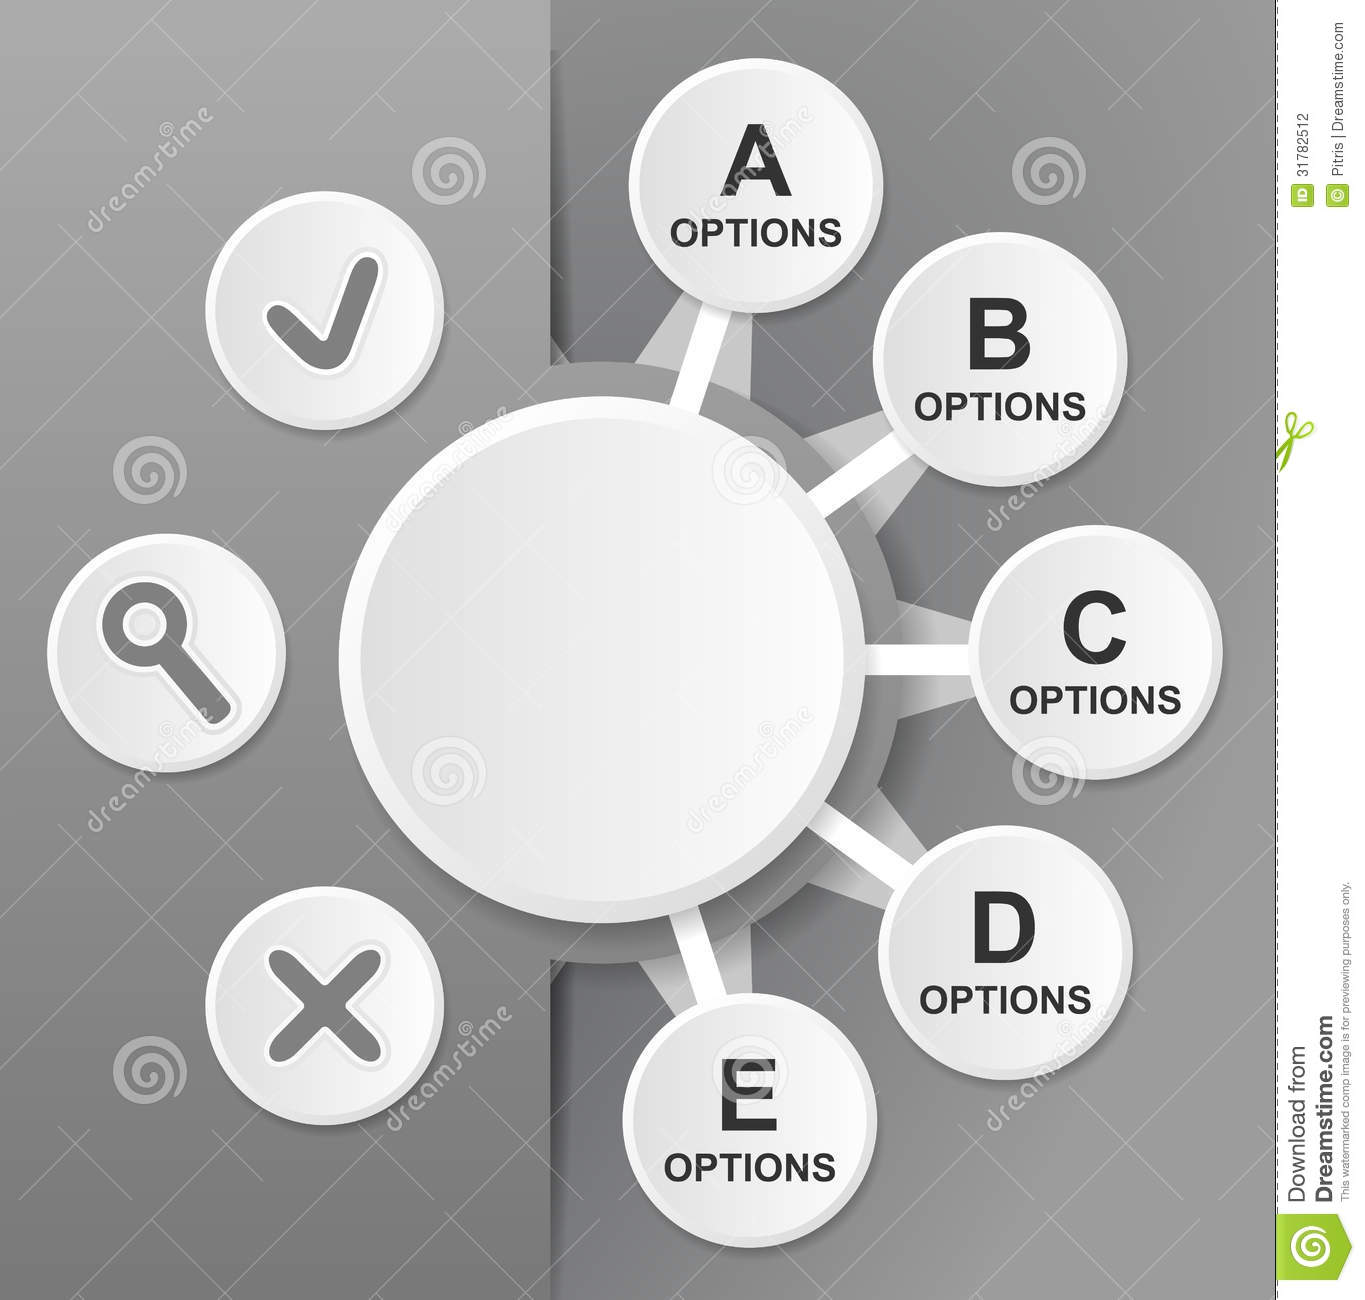 Diagram Template stock vector. Illustration of background ...